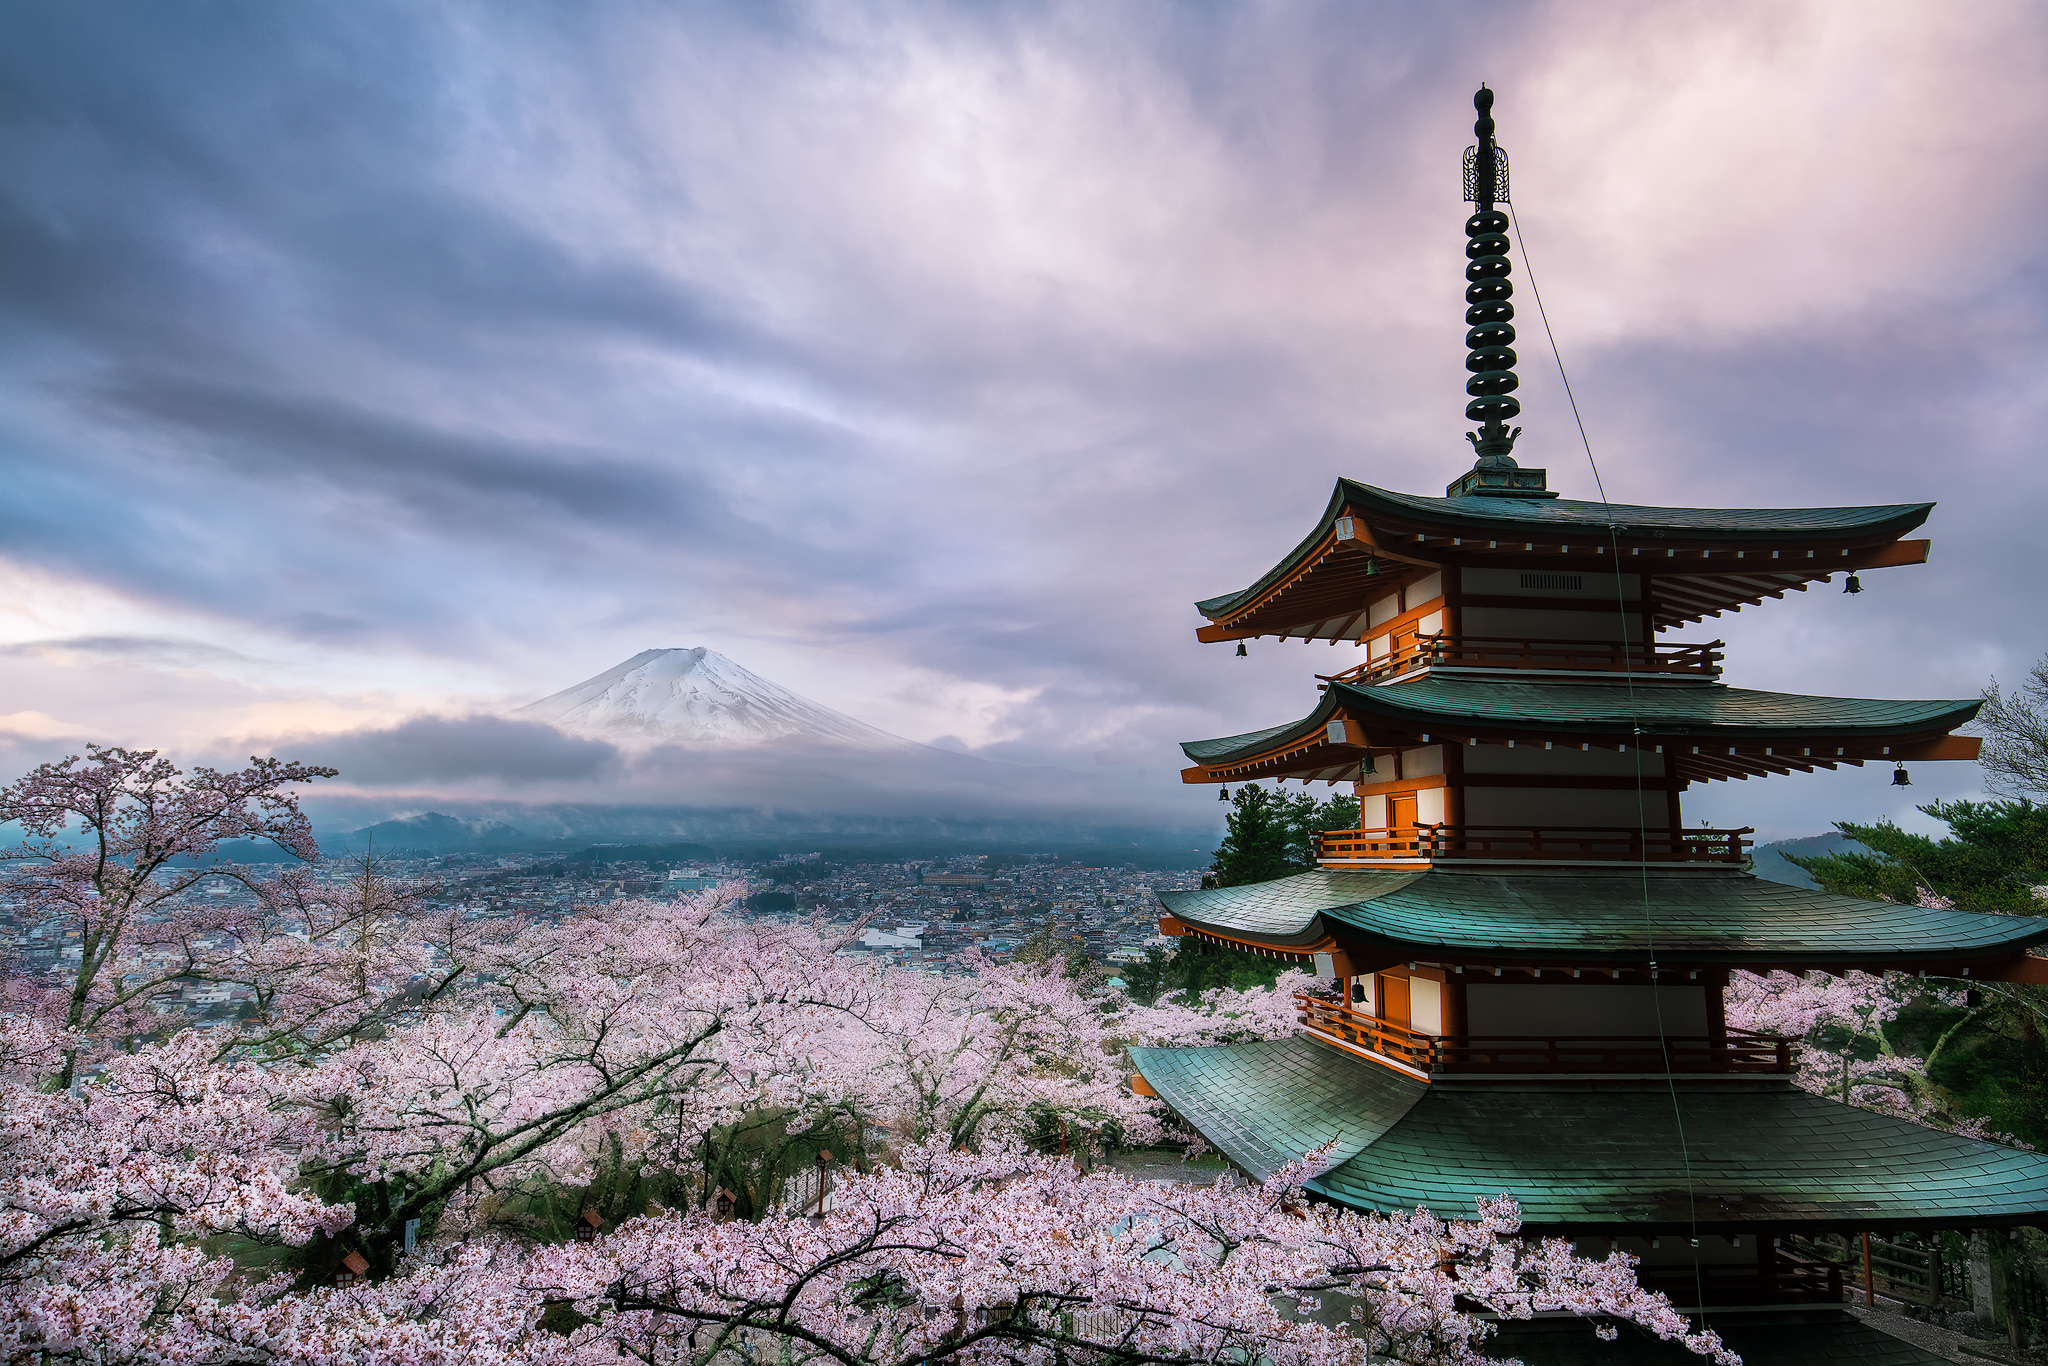 Mt.Fuji and Cherry blossoms